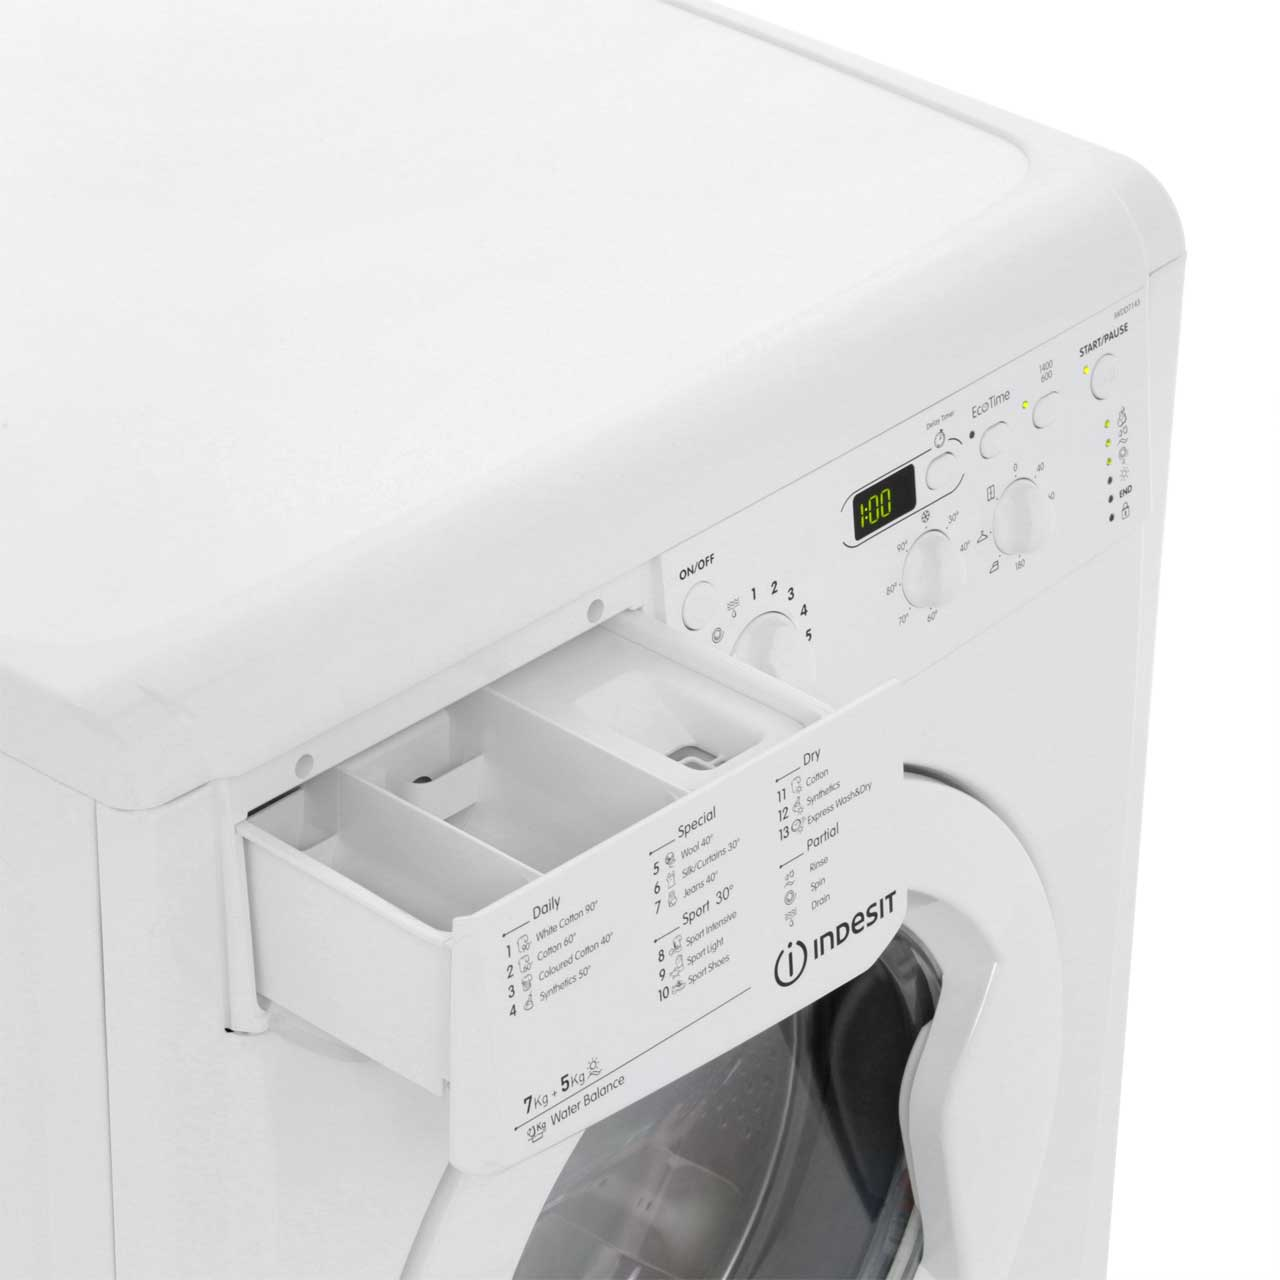 IWDD7143_WH   Indesit Washer Dryer   White   ao.com